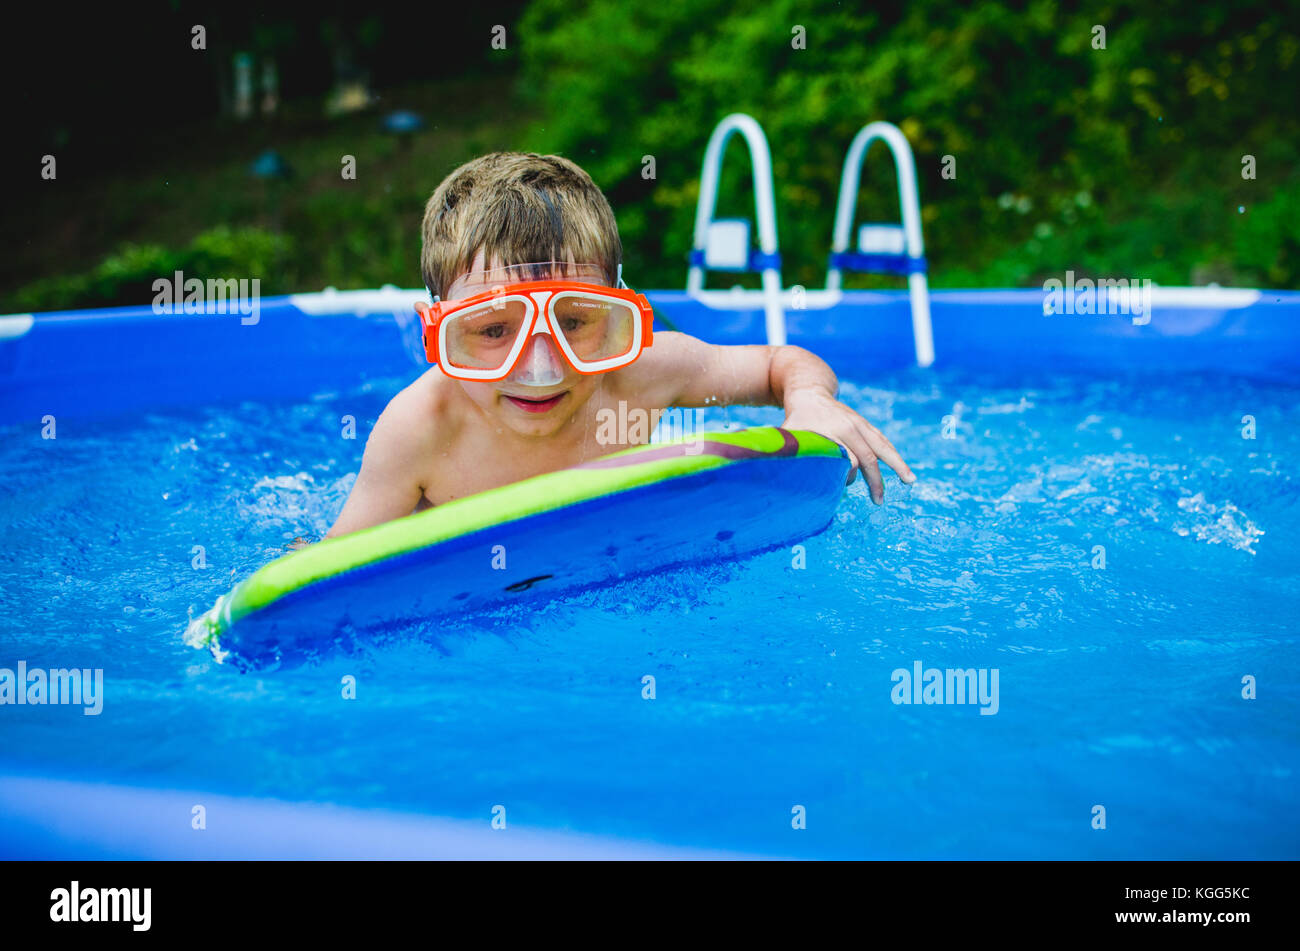 8-9 year old playing on a boogie board in a pool in summer. - Stock Image